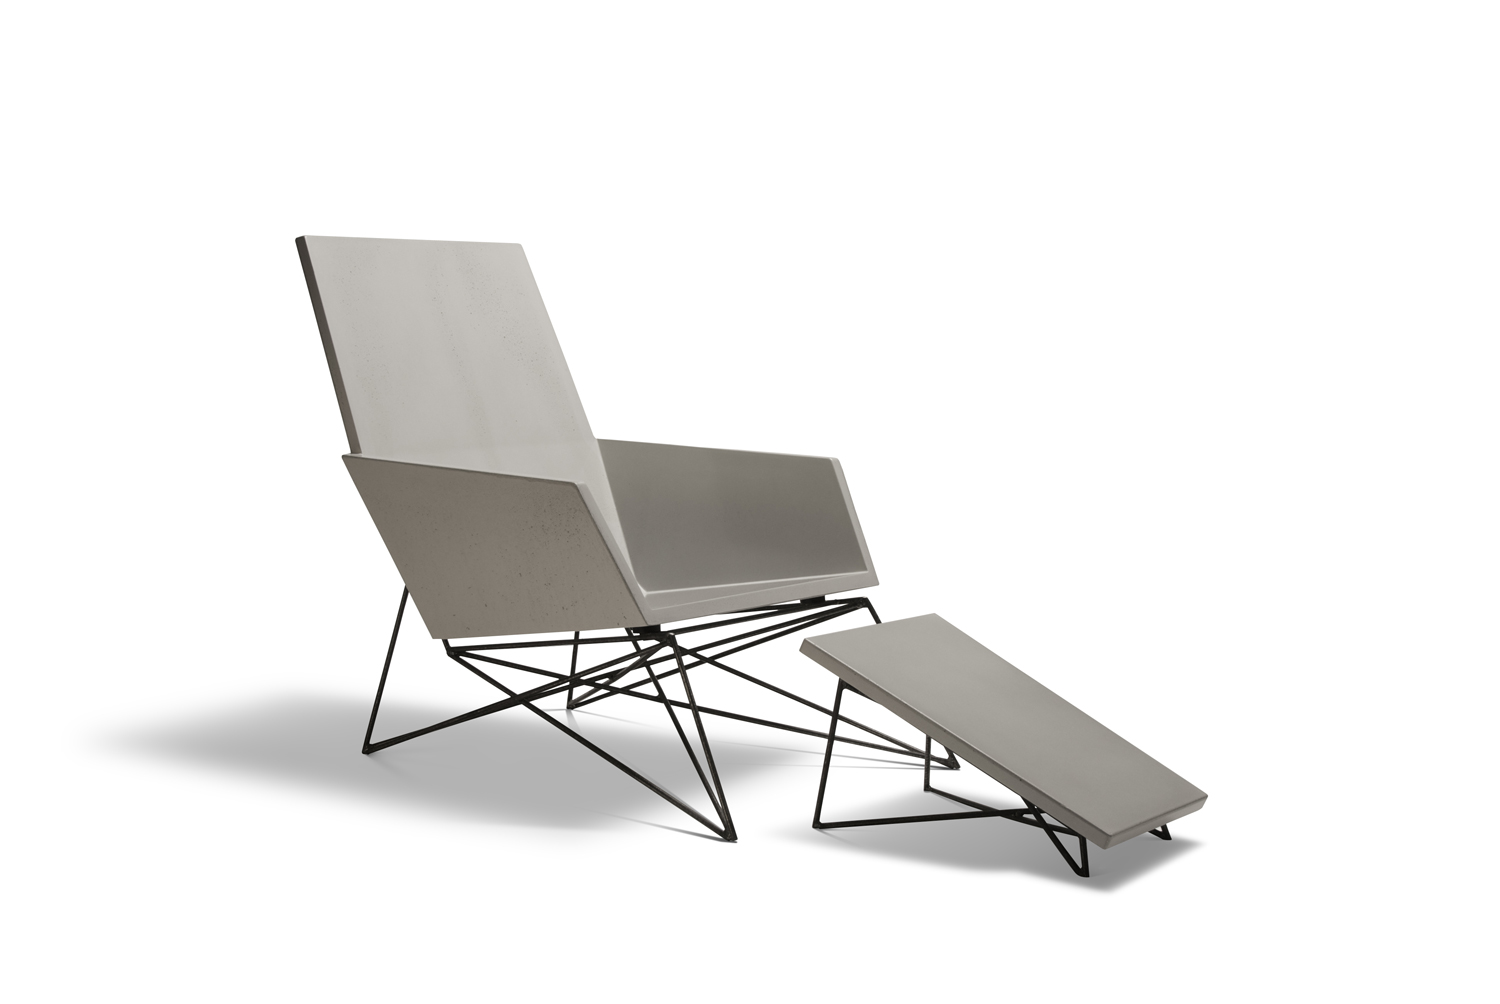 Hard Goods Concrete and Steel Modern Muskoka Outdoor Chair